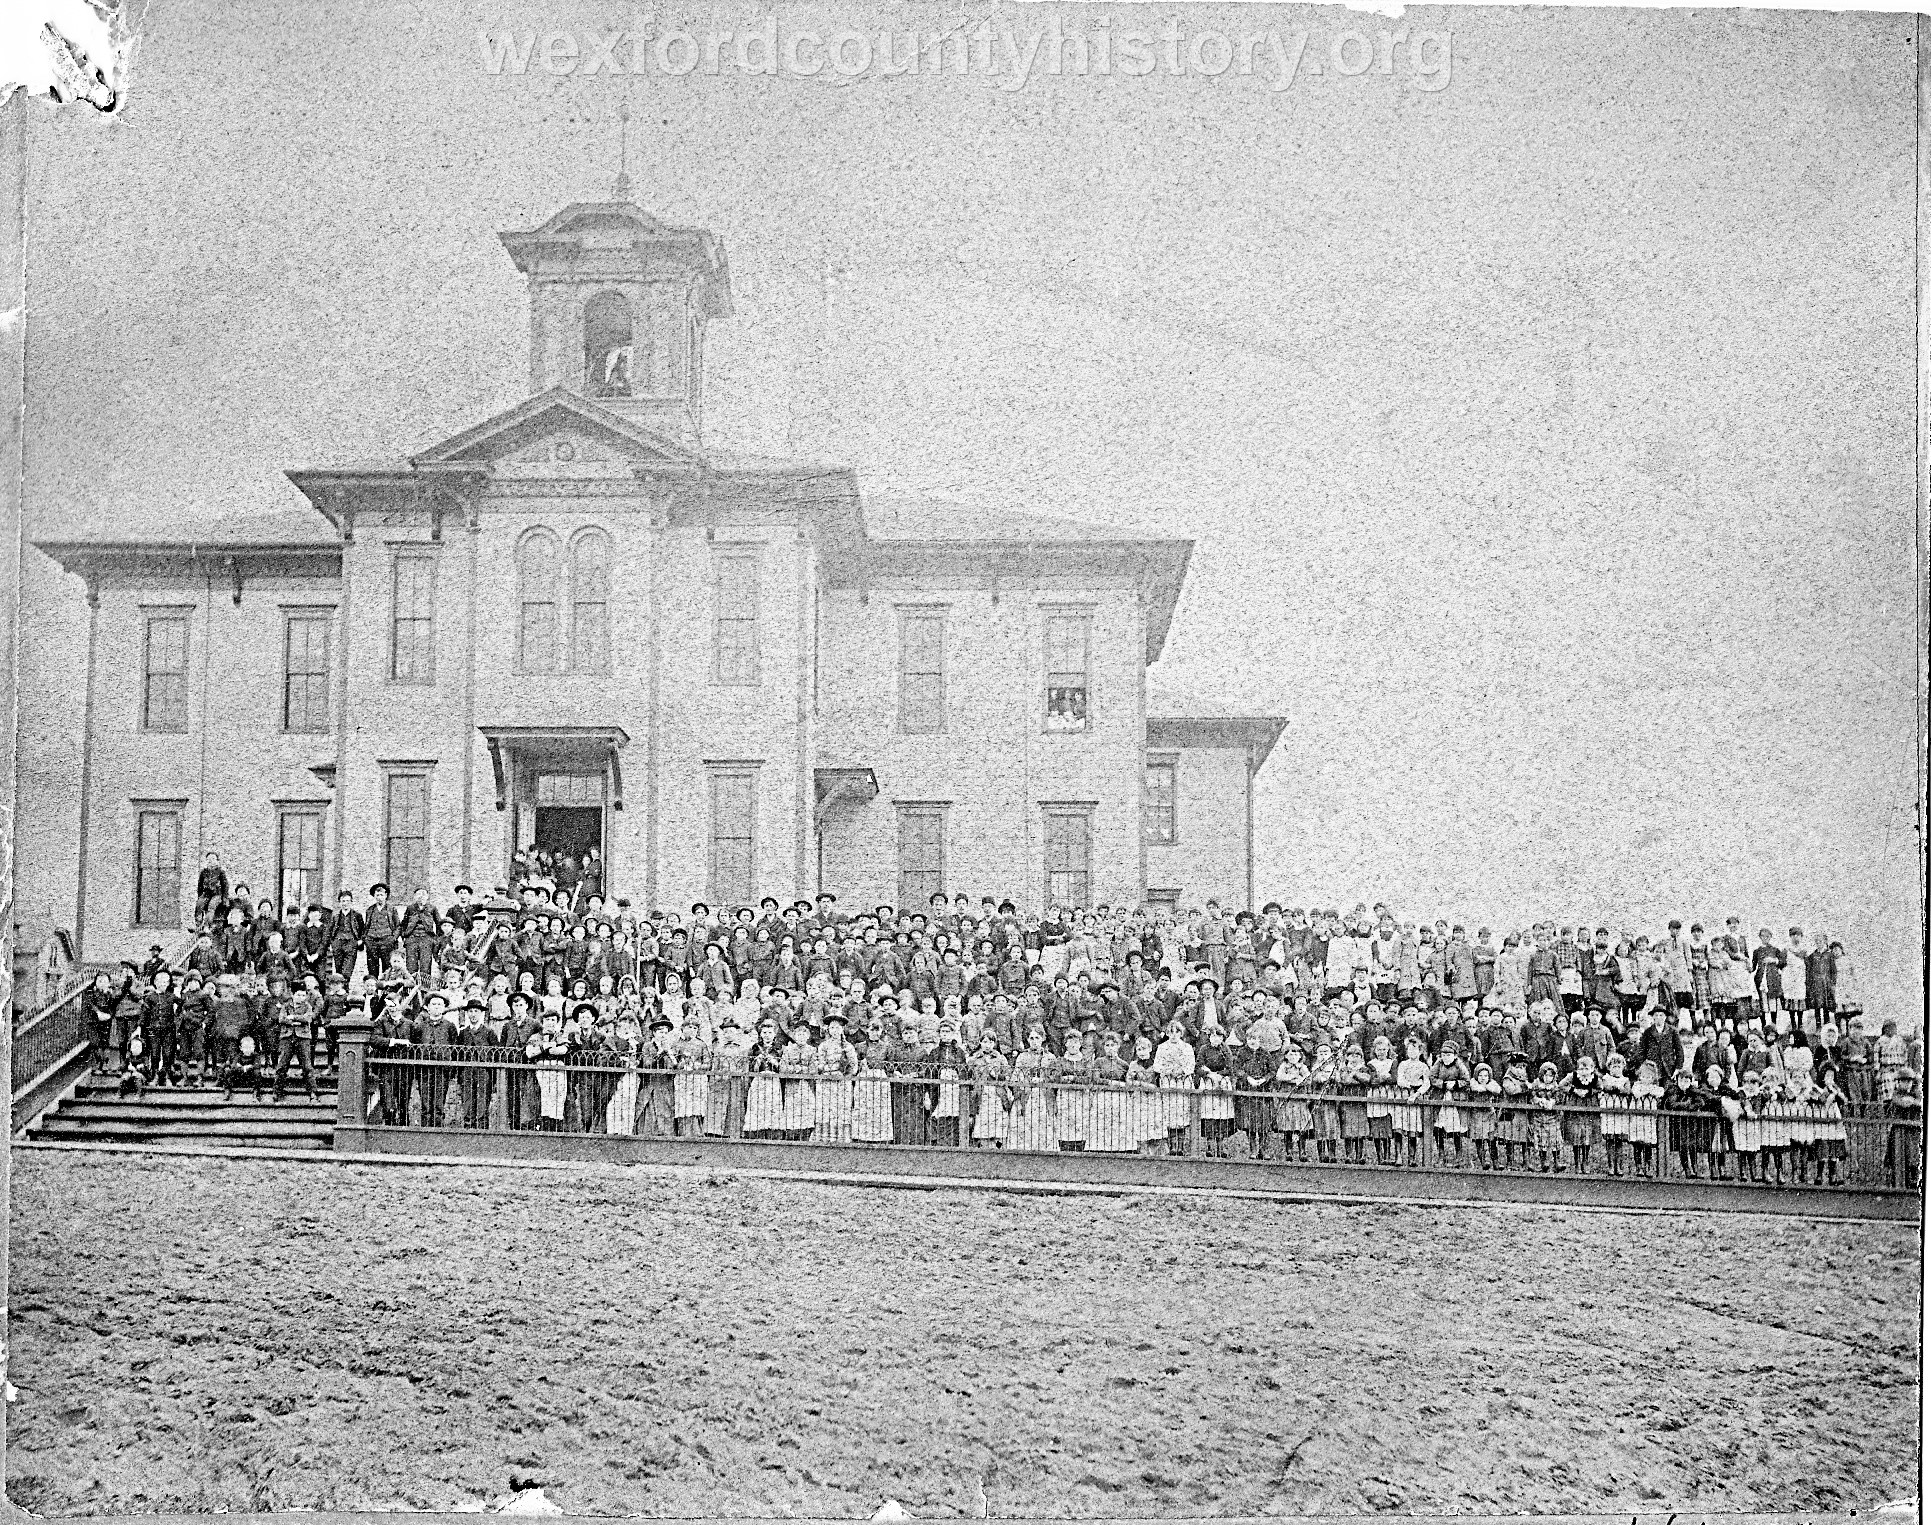 The Rebuilt Wooden High School (Lasted Until 1889)